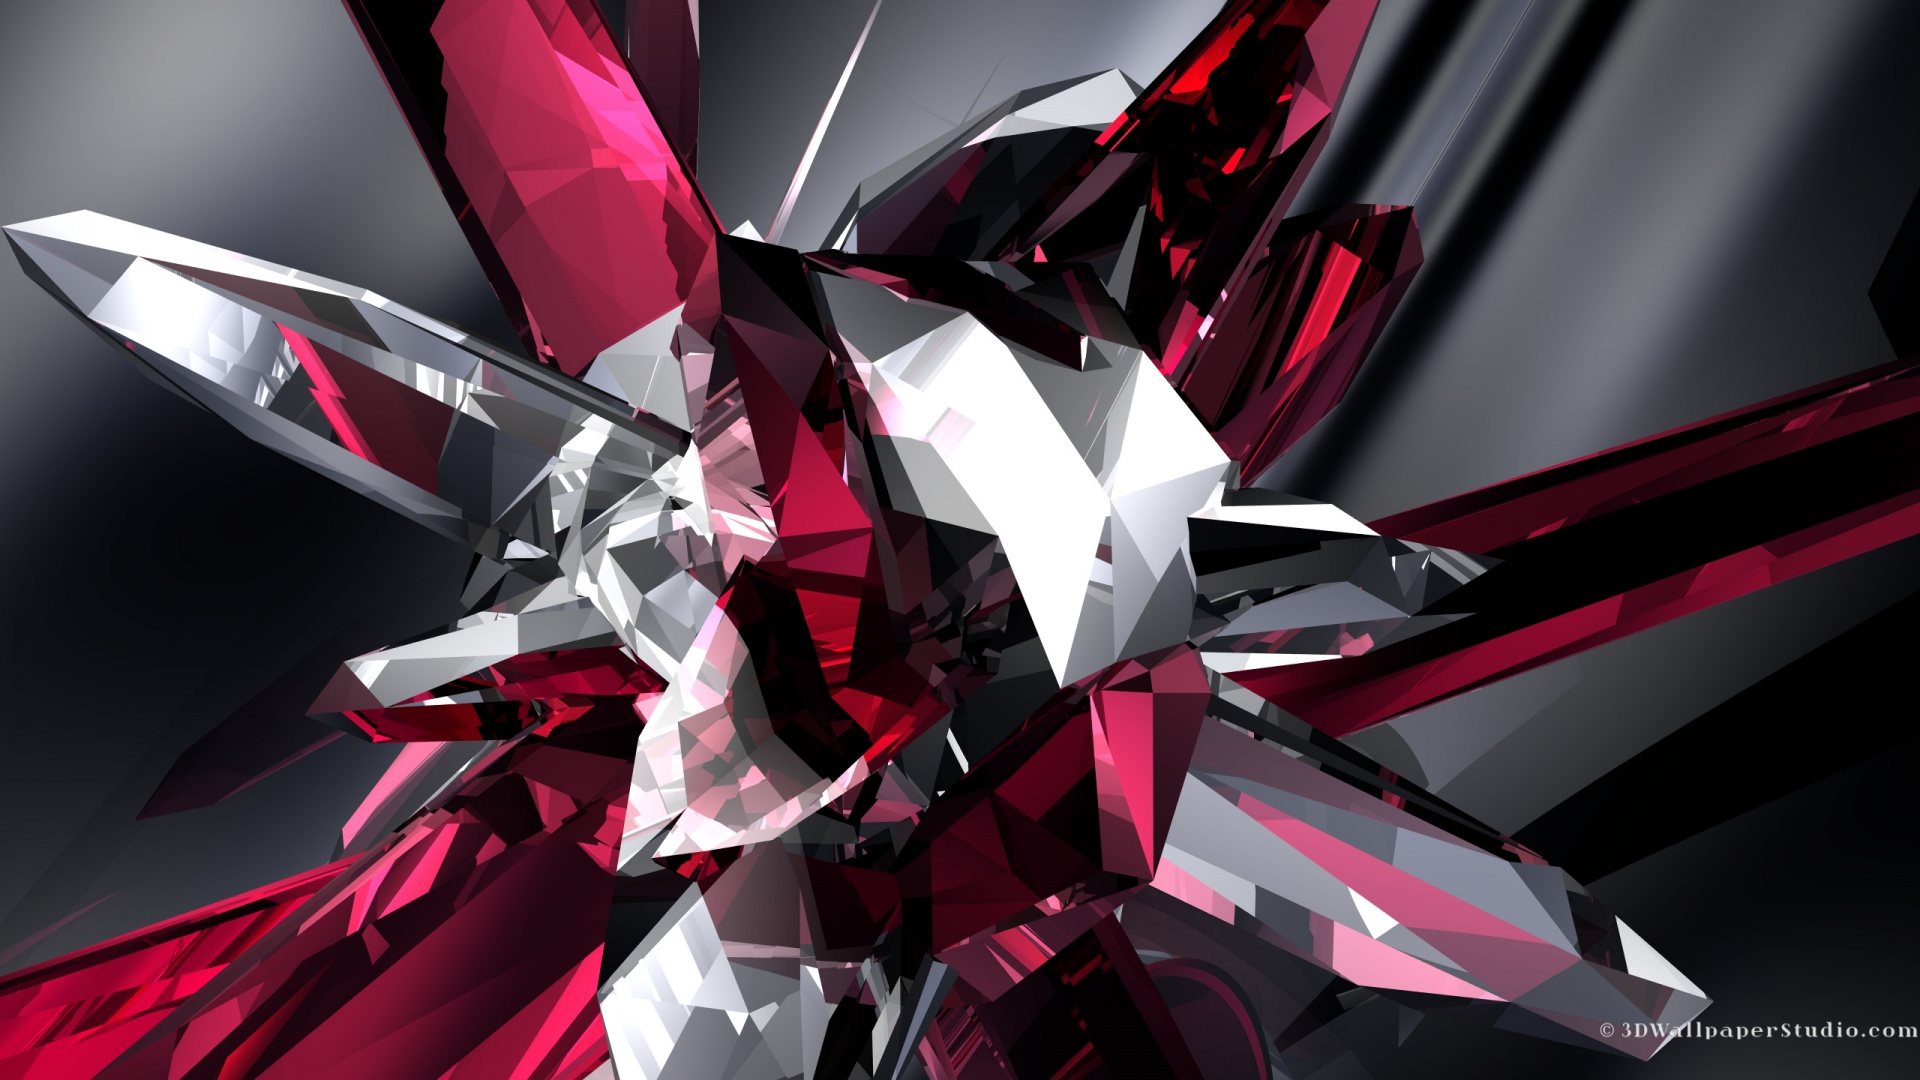 abstract 3d wallpaper 1920x1080 - photo #9